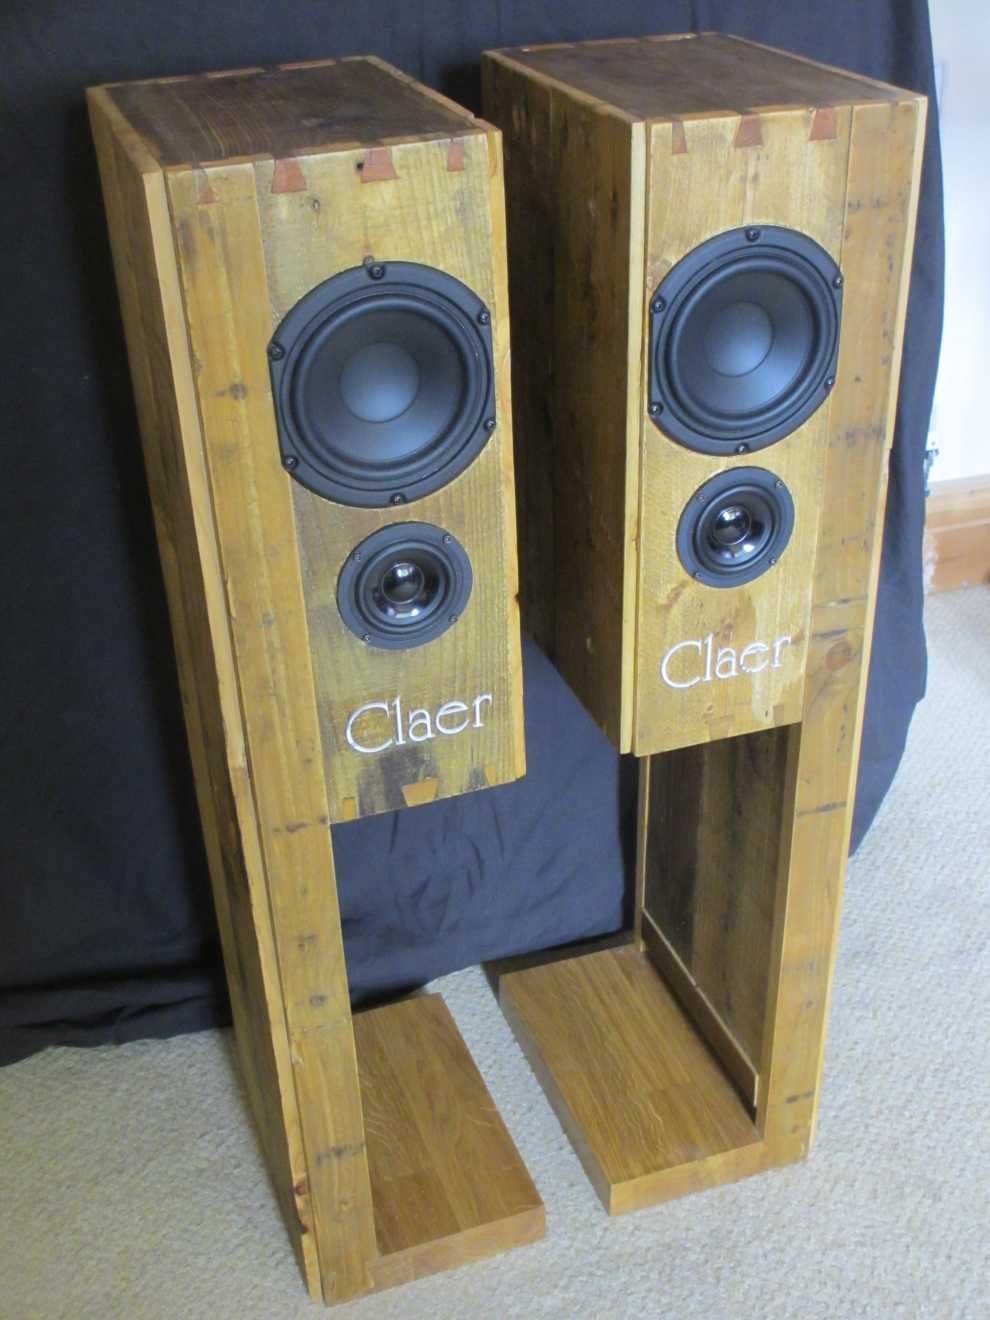 Claer 43 Claer Transmission Line Speaker Design